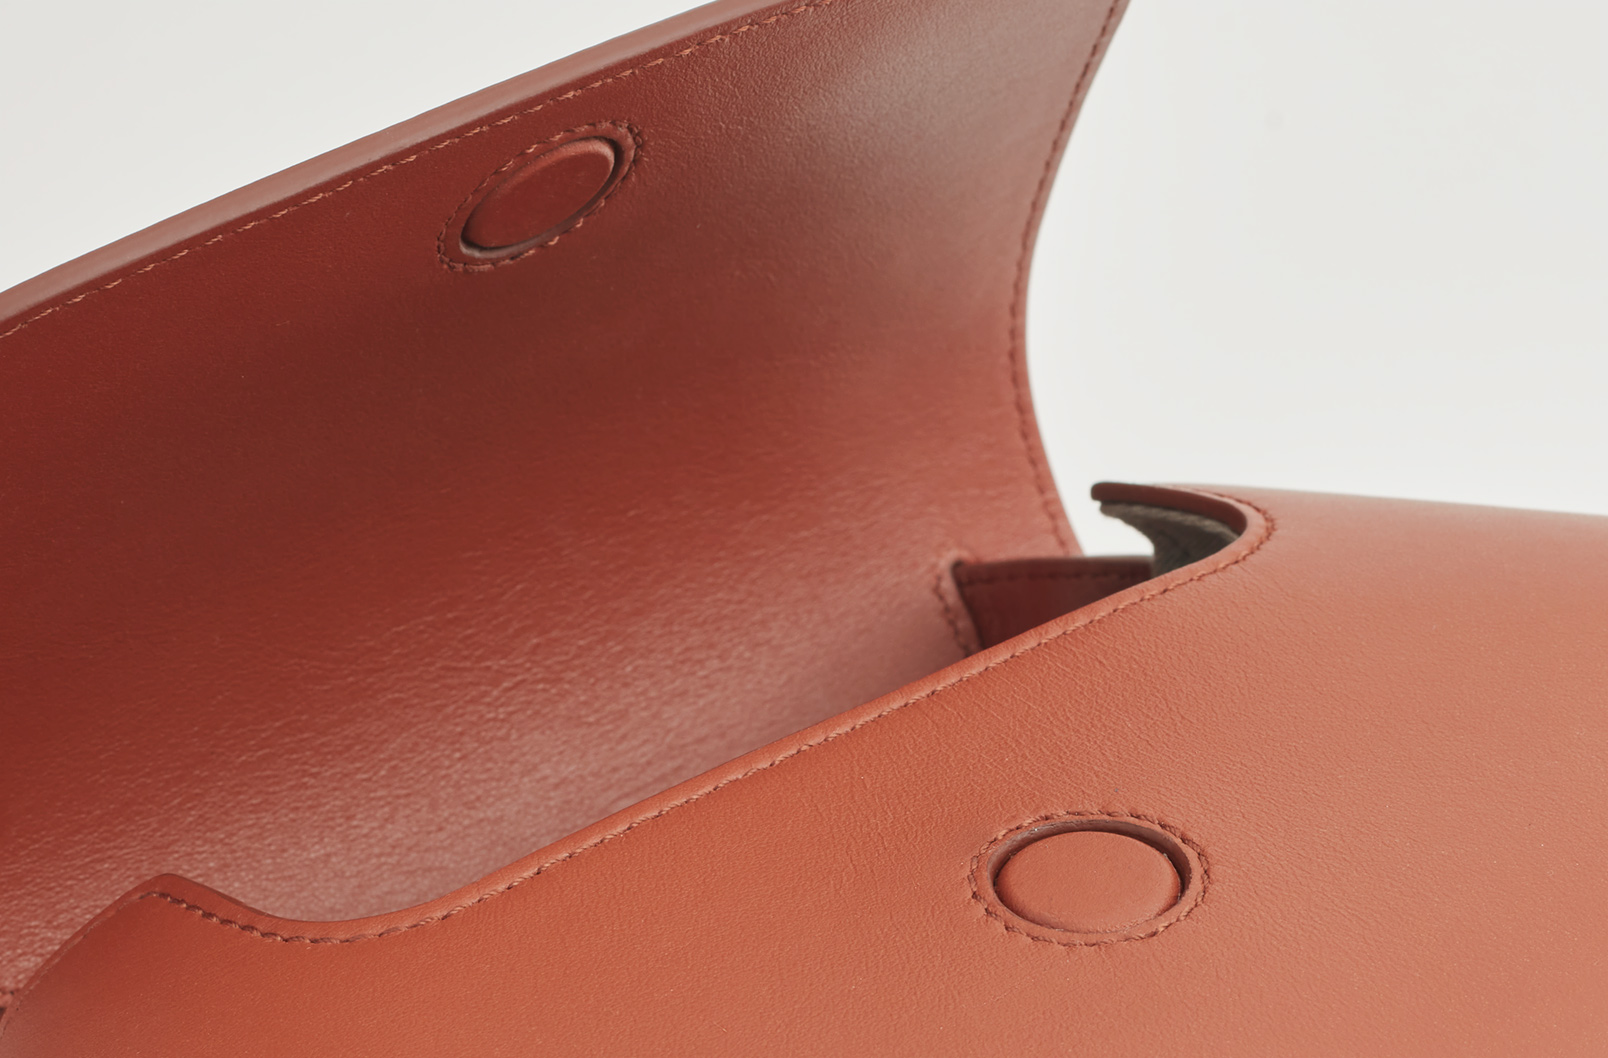 Detail image of Hexagon Crossbody Closure